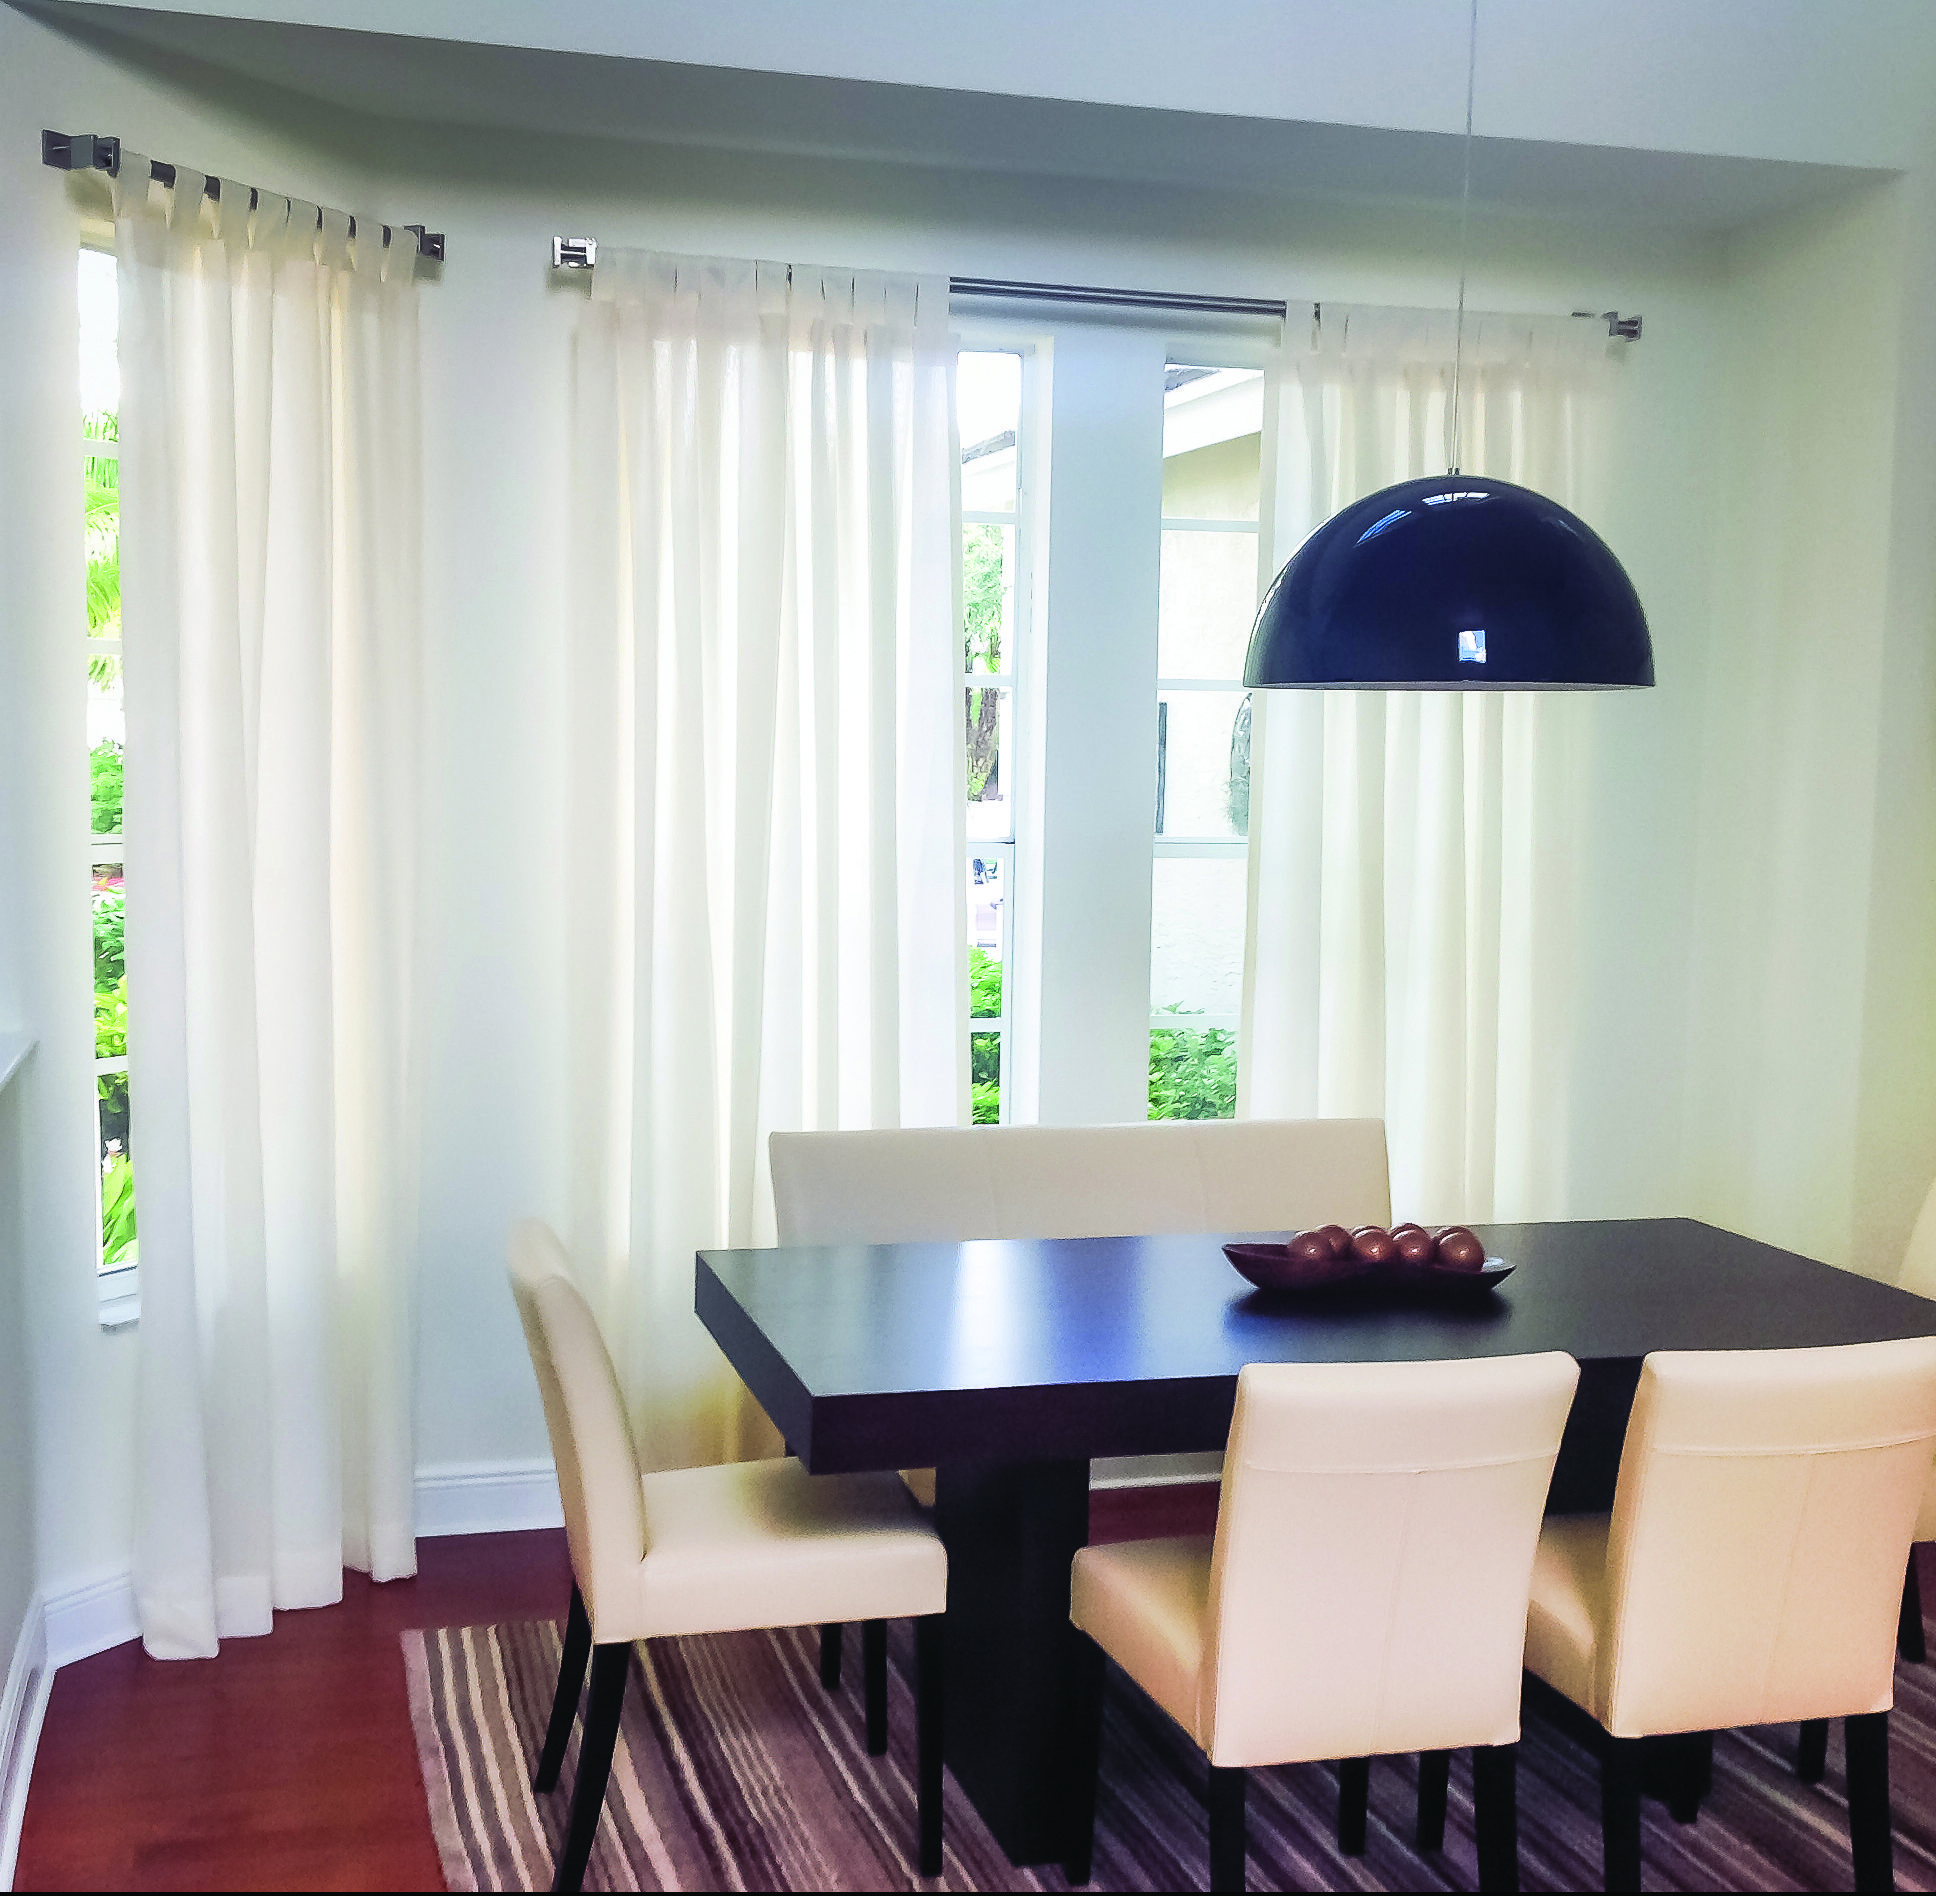 How about tap curtains sheer and linen to start off the week! This Weston residence looks beautiful with this final touch. #blindsshadesandshutters #myblindstoday #windowtreatment #miami #homedecor #homedecormiami #interiordesign #condoliving #luxury #luxuryliving  #miamiliving #home #light #miamicondos #miamibest